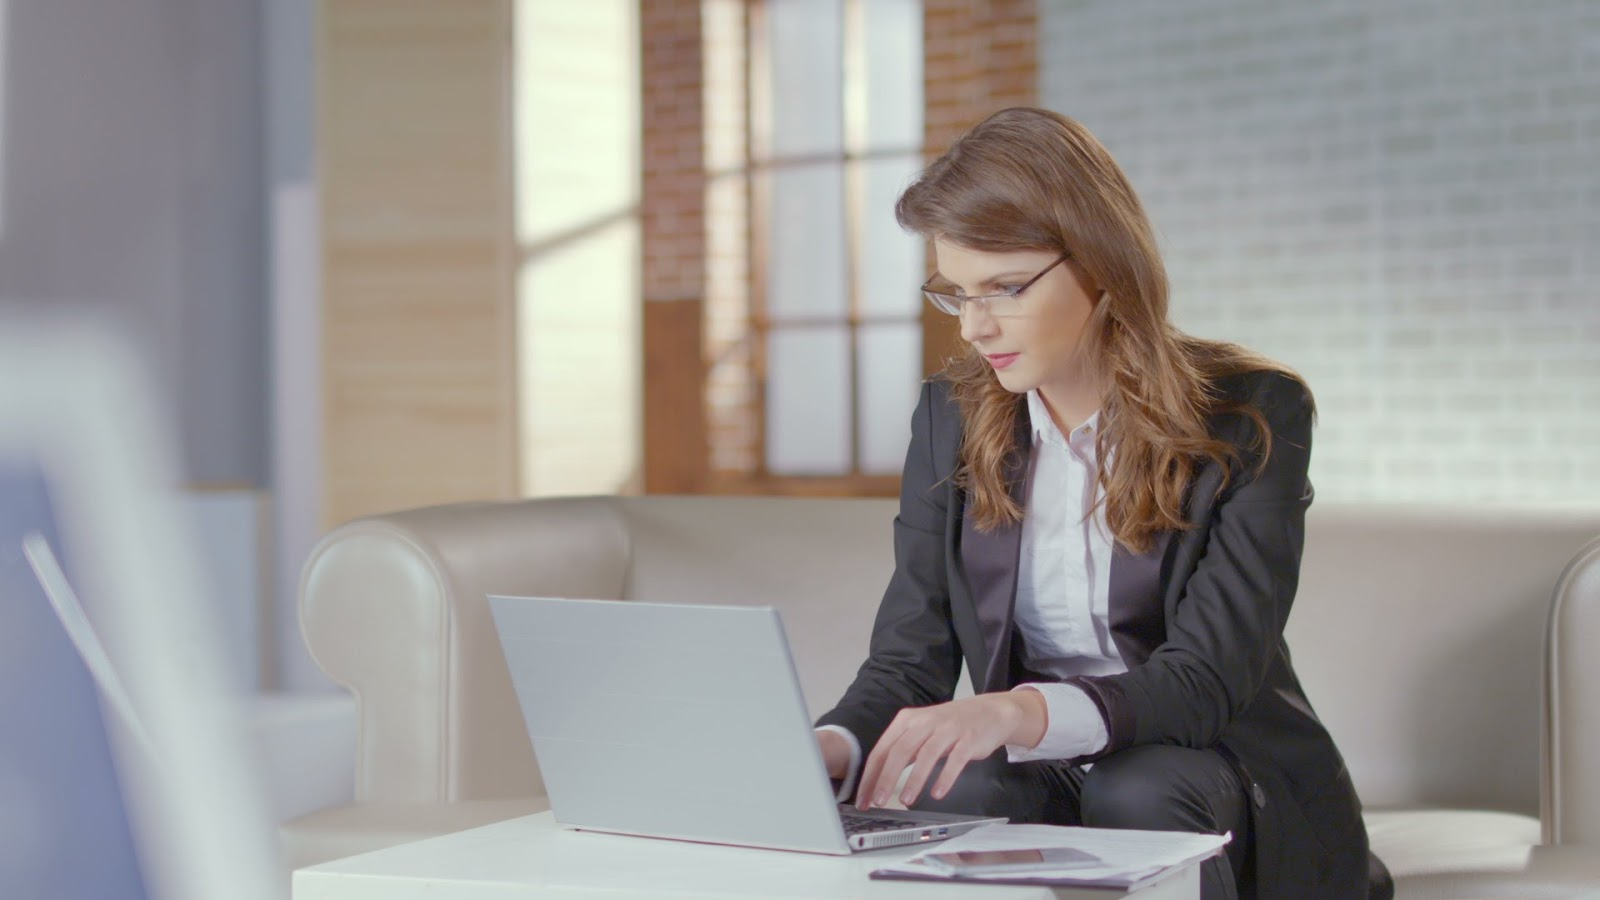 LinkedIn Freelance Content Writing Jobs Content Writer in Delhi  Content Developer  Writing Services